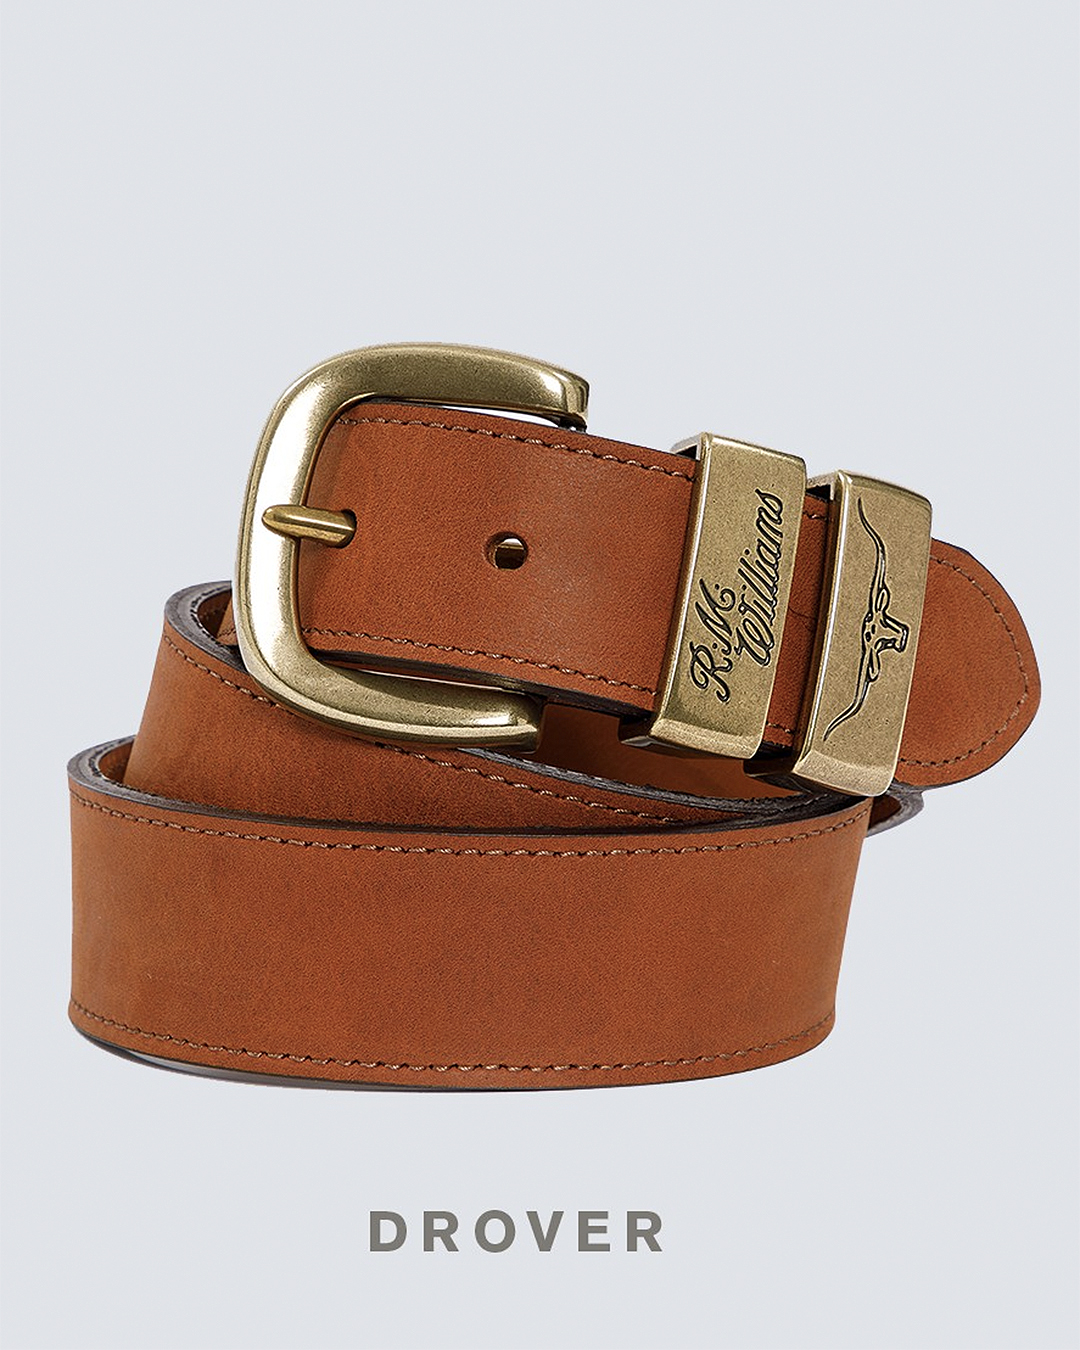 The Drover belt from RM Williams looking covetable.